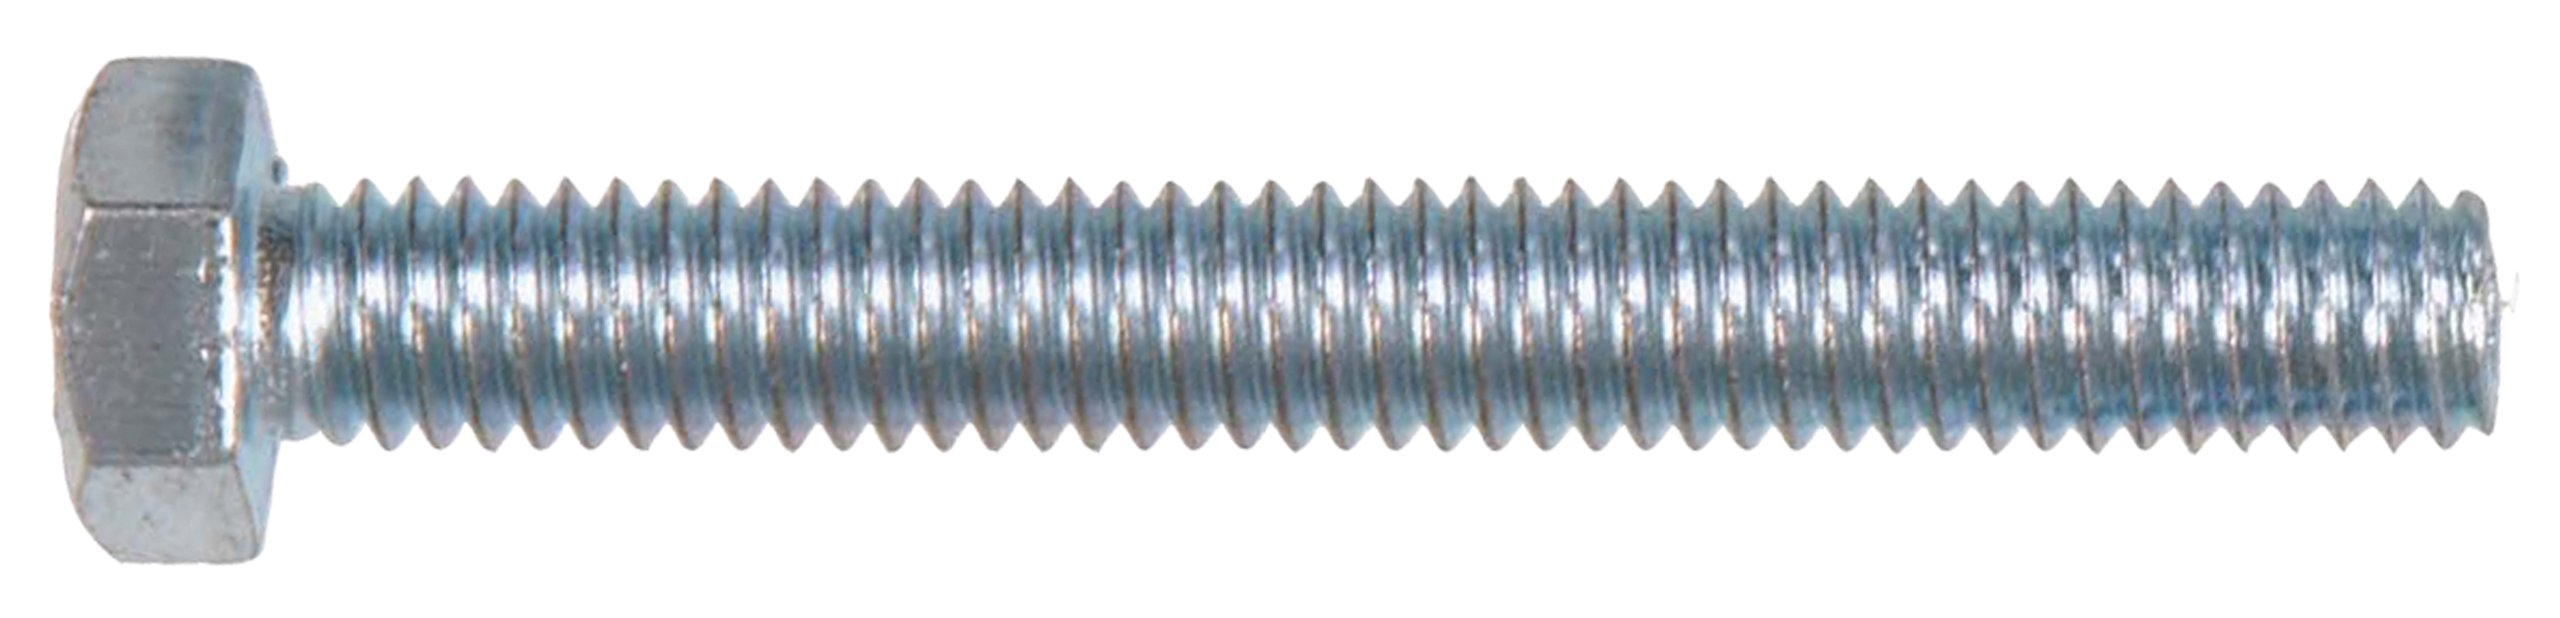 The Hillman Group 2893 Hex Tap Bolt, 3/8-16 X 4-Inch, 10-Pack